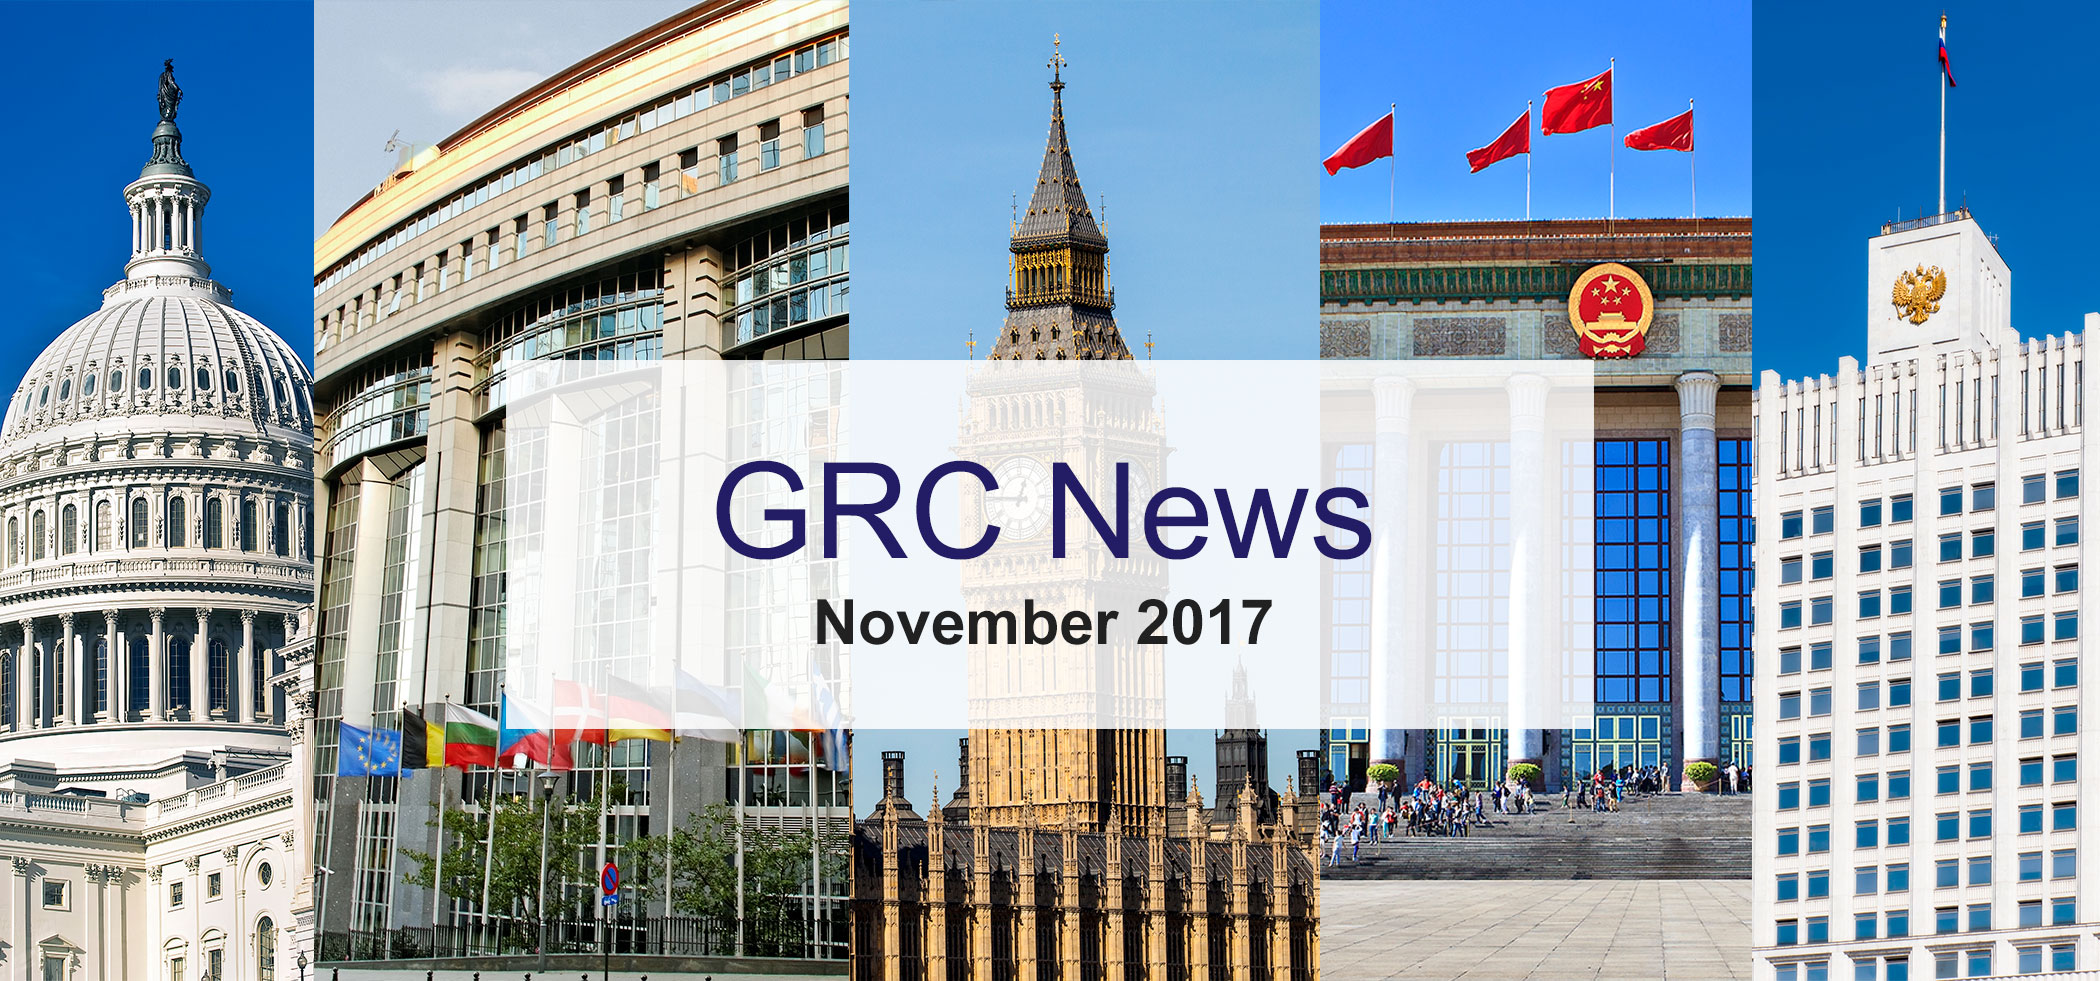 GRC-News-Nov2017.jpg